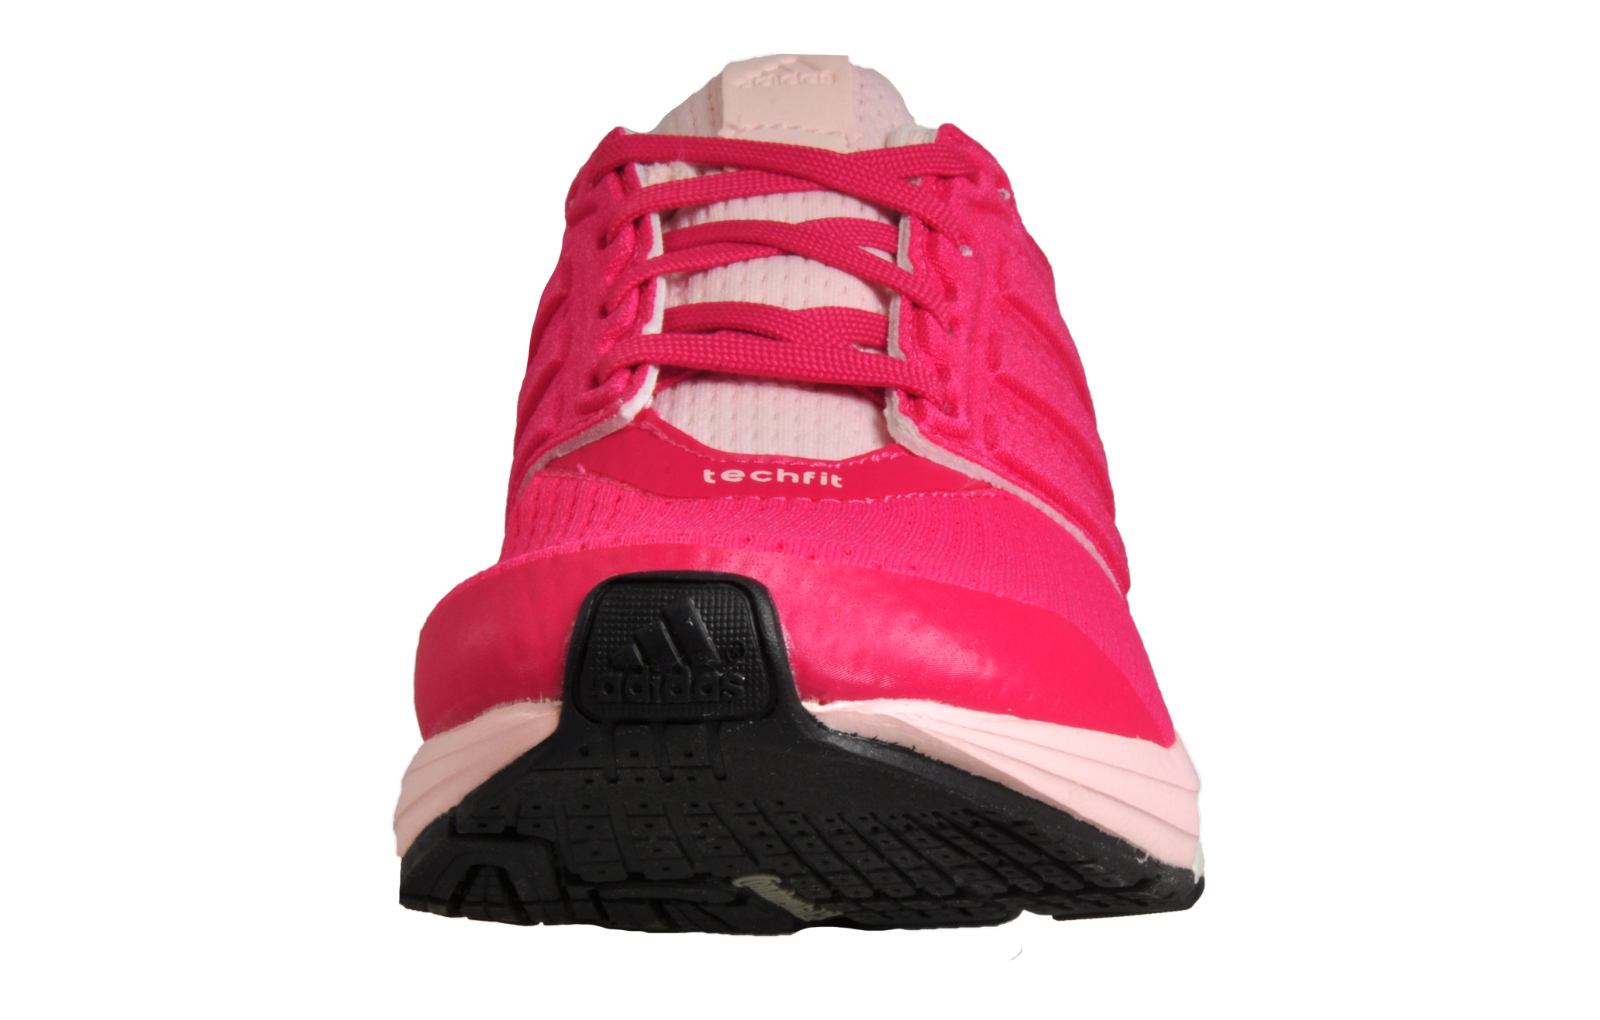 36c54464bcc02 Adidas SuperNova Glide 8 Boost Womens Running Shoes Fitness Gym Trainers  Pink